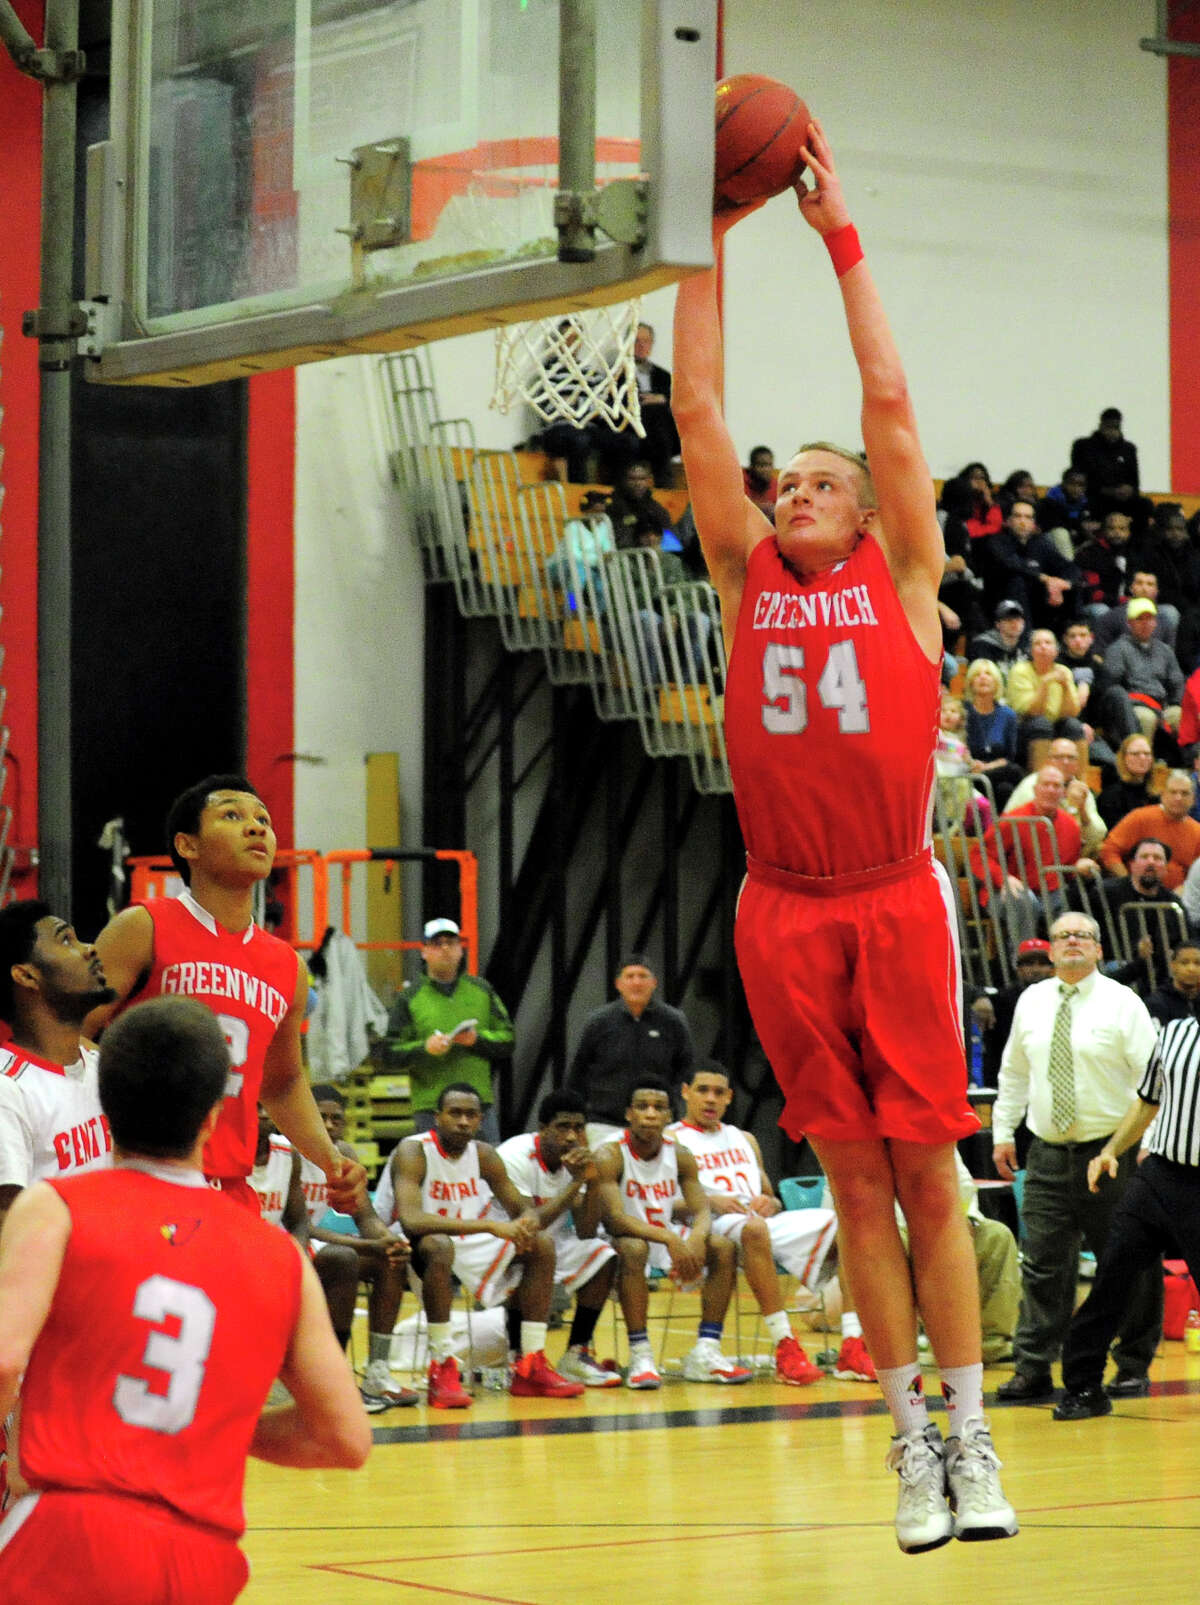 Greenwich's Alex Wolf prepares to slam dunk the ball, during boys basketball action against Central in Bridgeport, Conn. on Tuesday February 11, 2014.